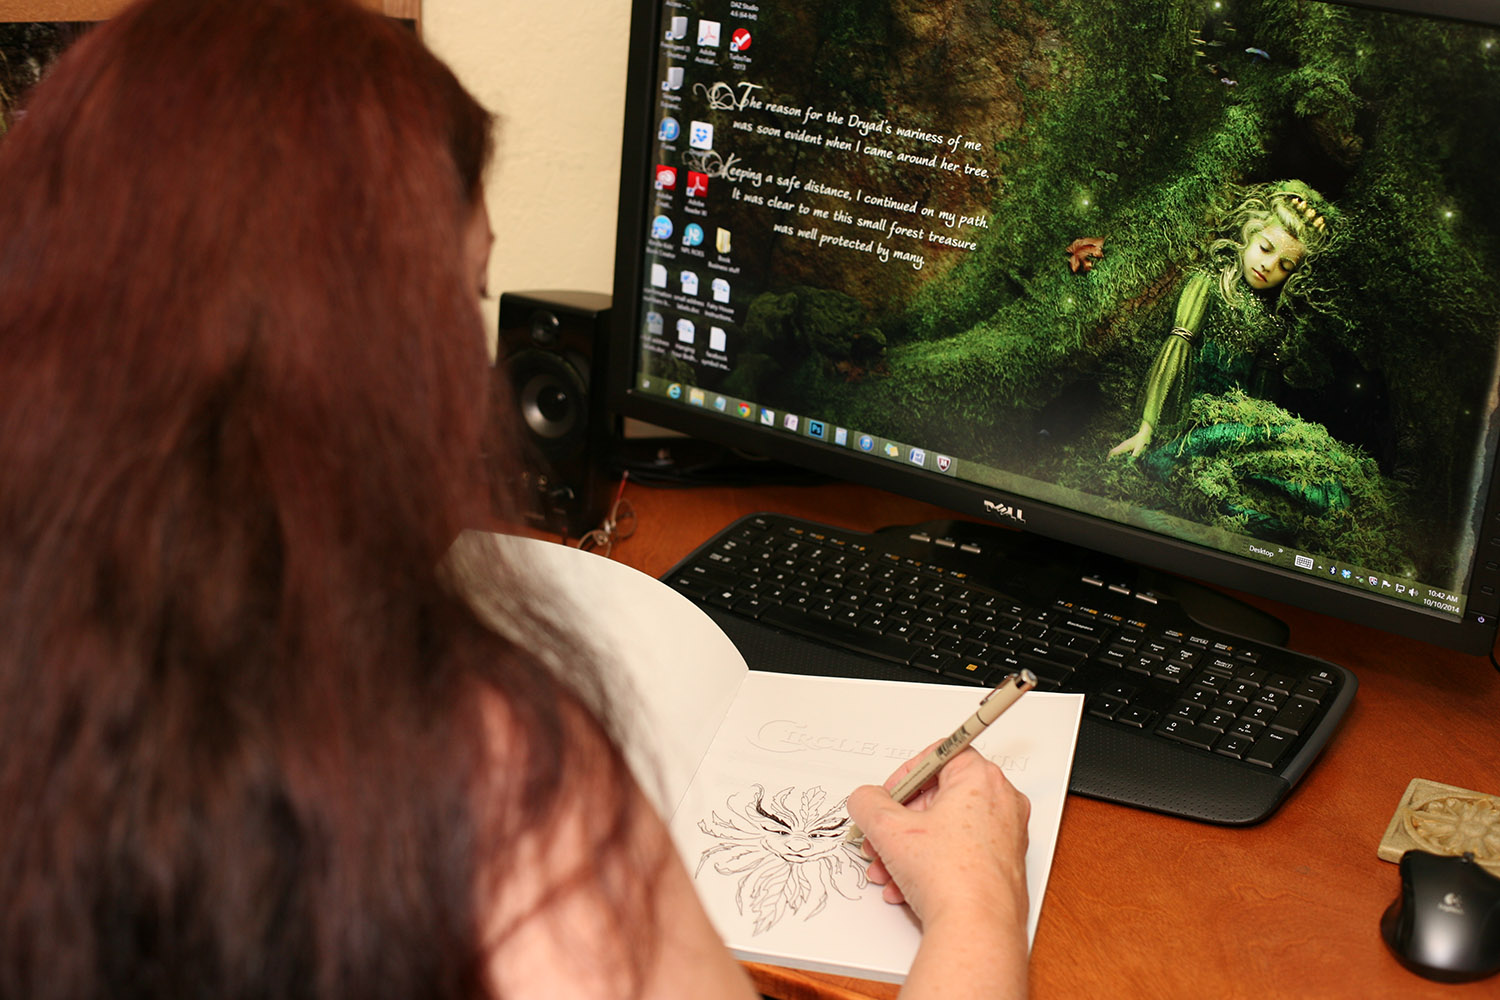 Don't forget...for a limited time Susan will not only sign books orders but also include a hand drawn sketch, too!